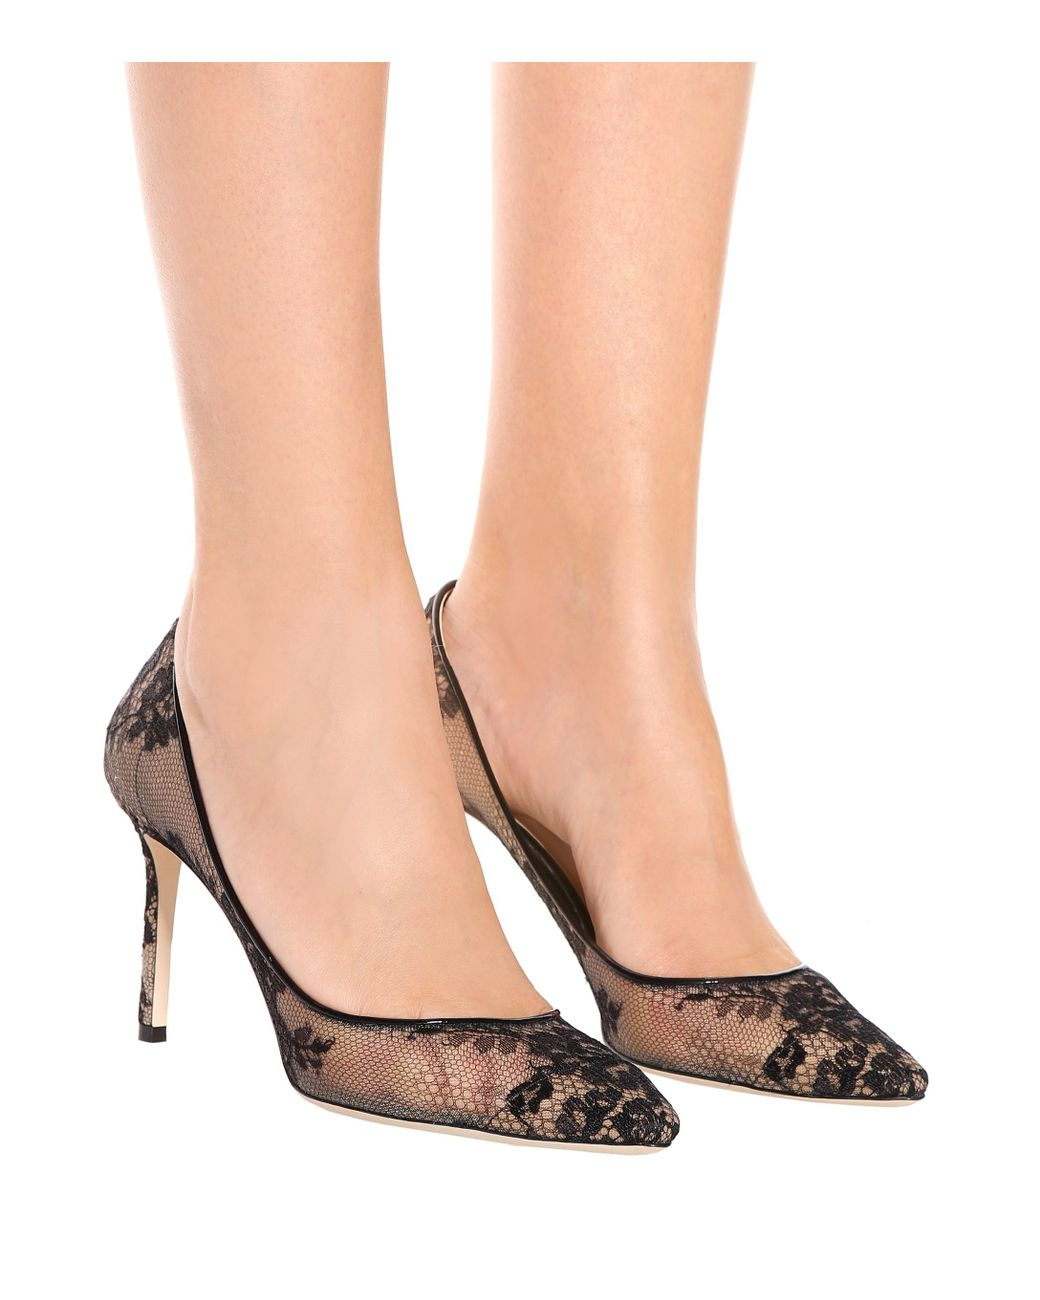 40203556490ce Jimmy Choo Romy 85 Lace Pumps - Save 30% - Lyst